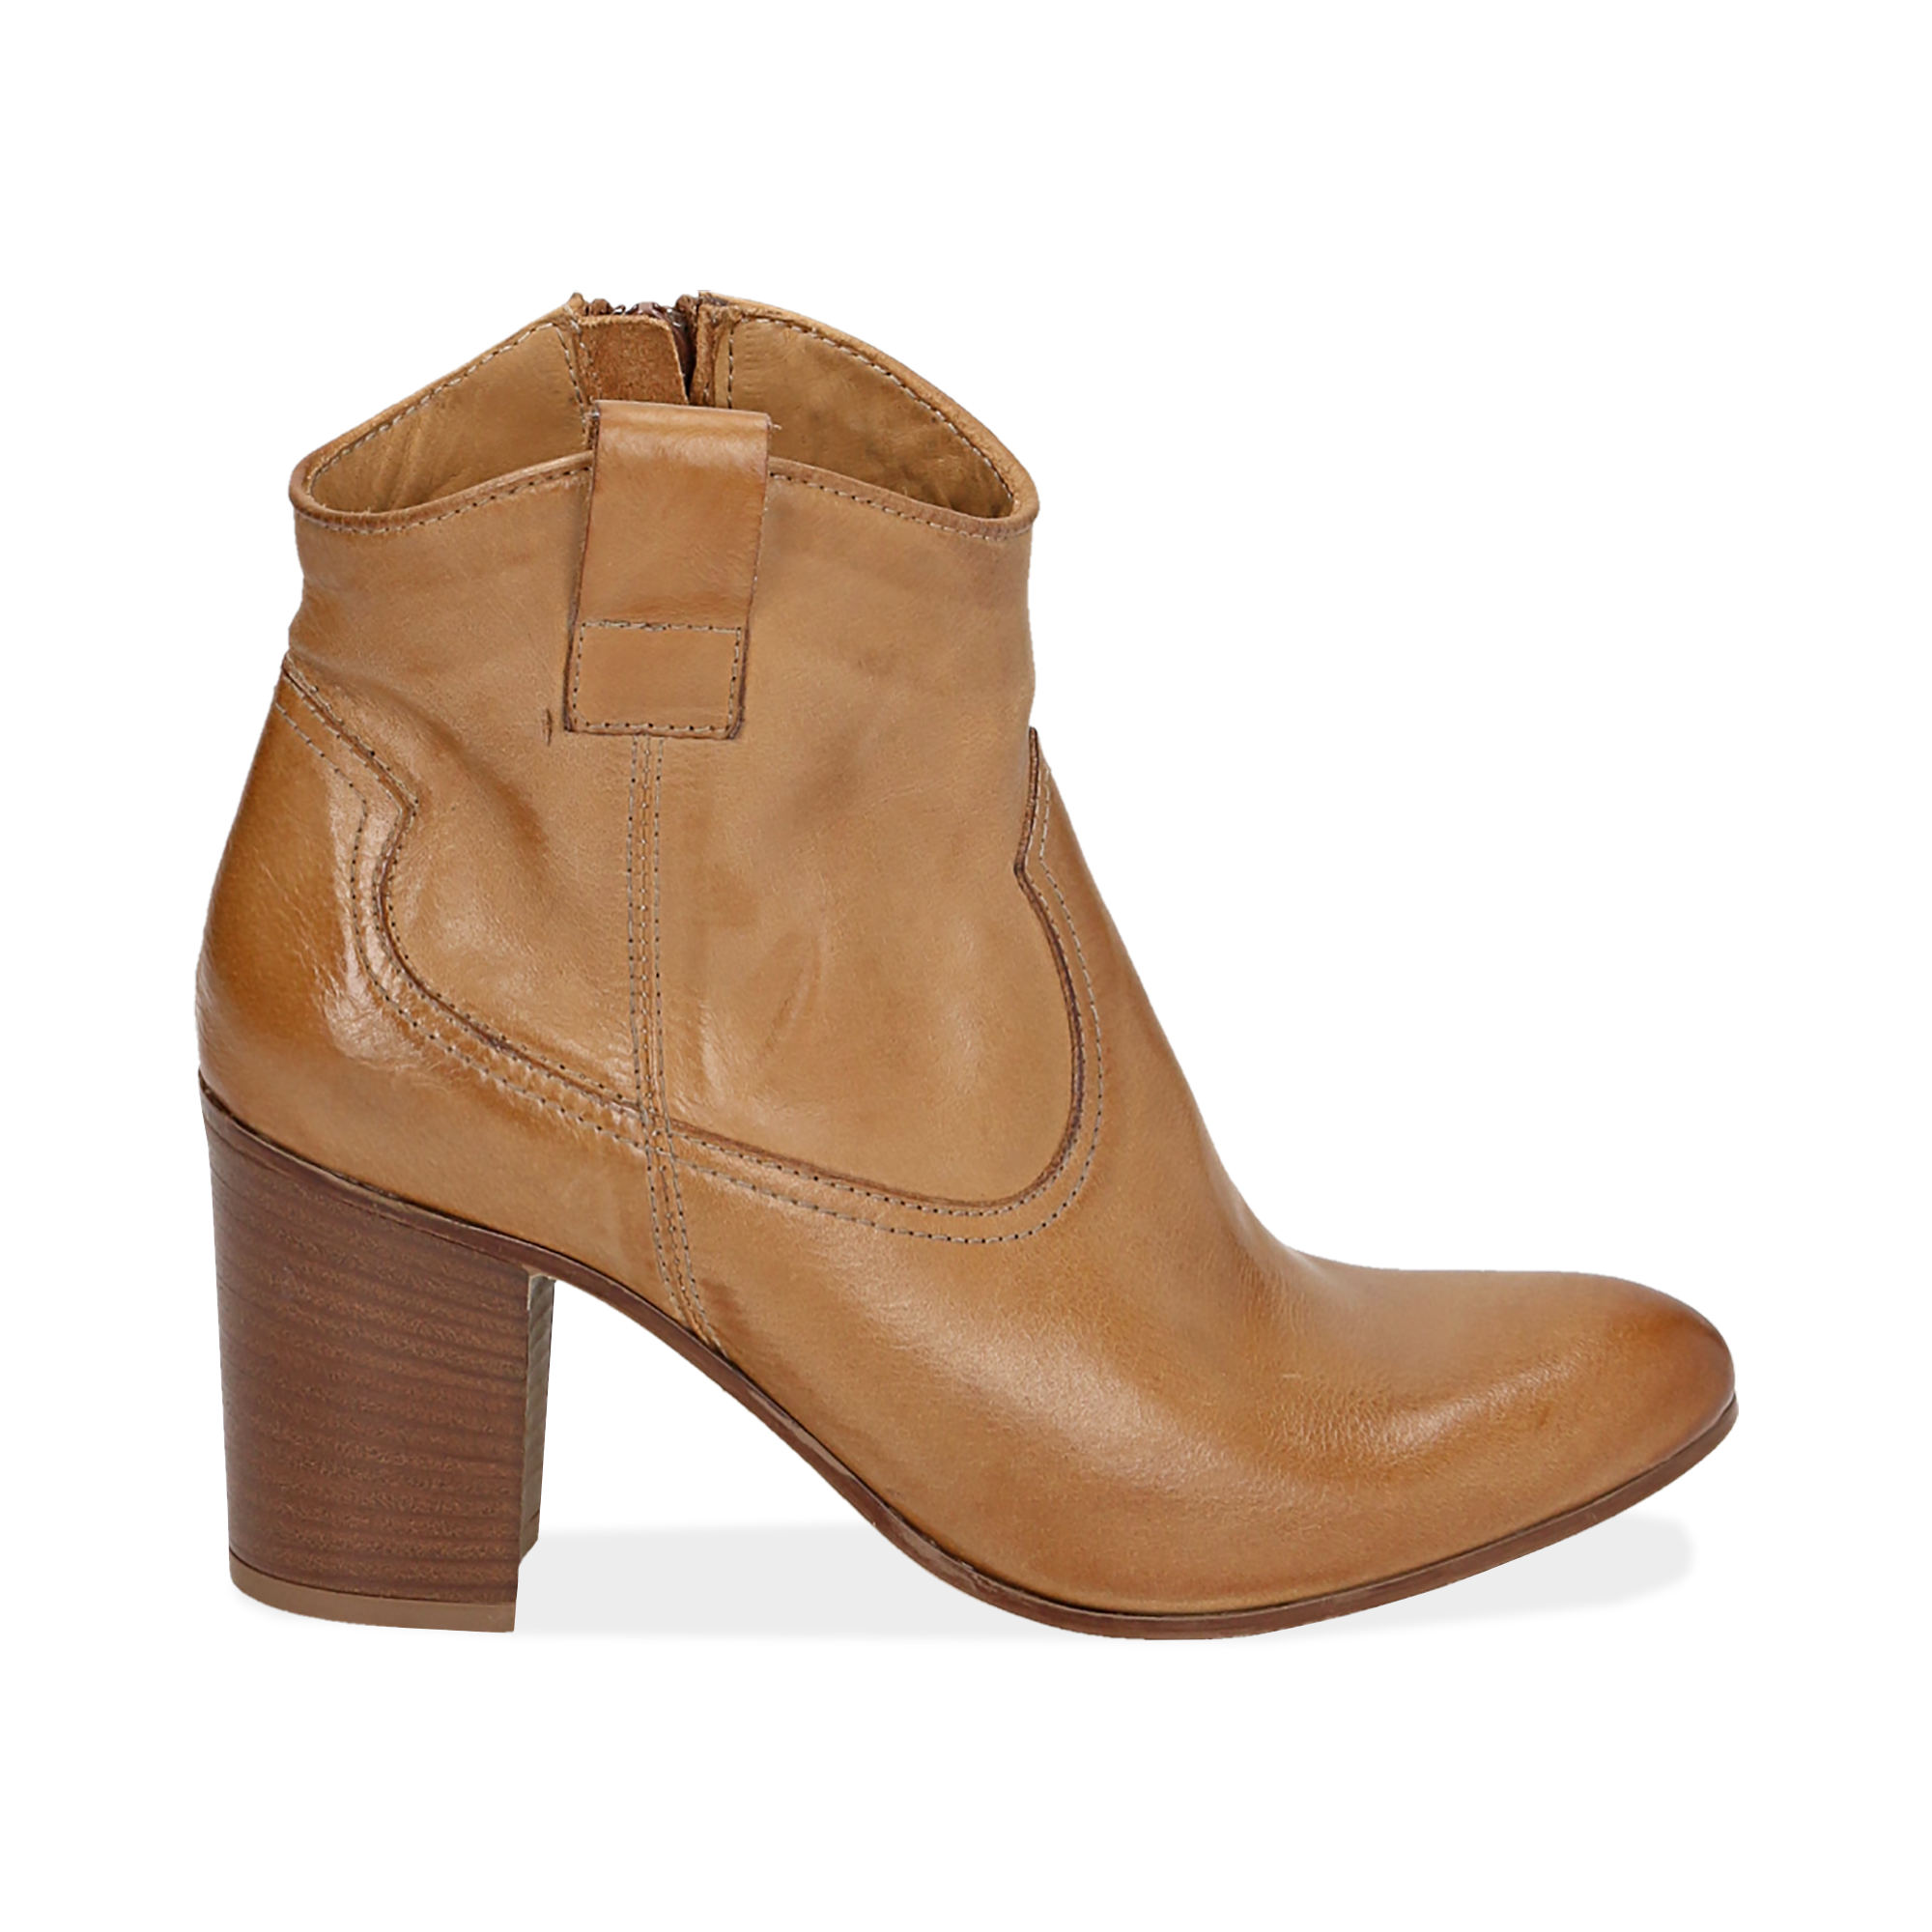 Bottines camel en cuir, talon 7,50 cm